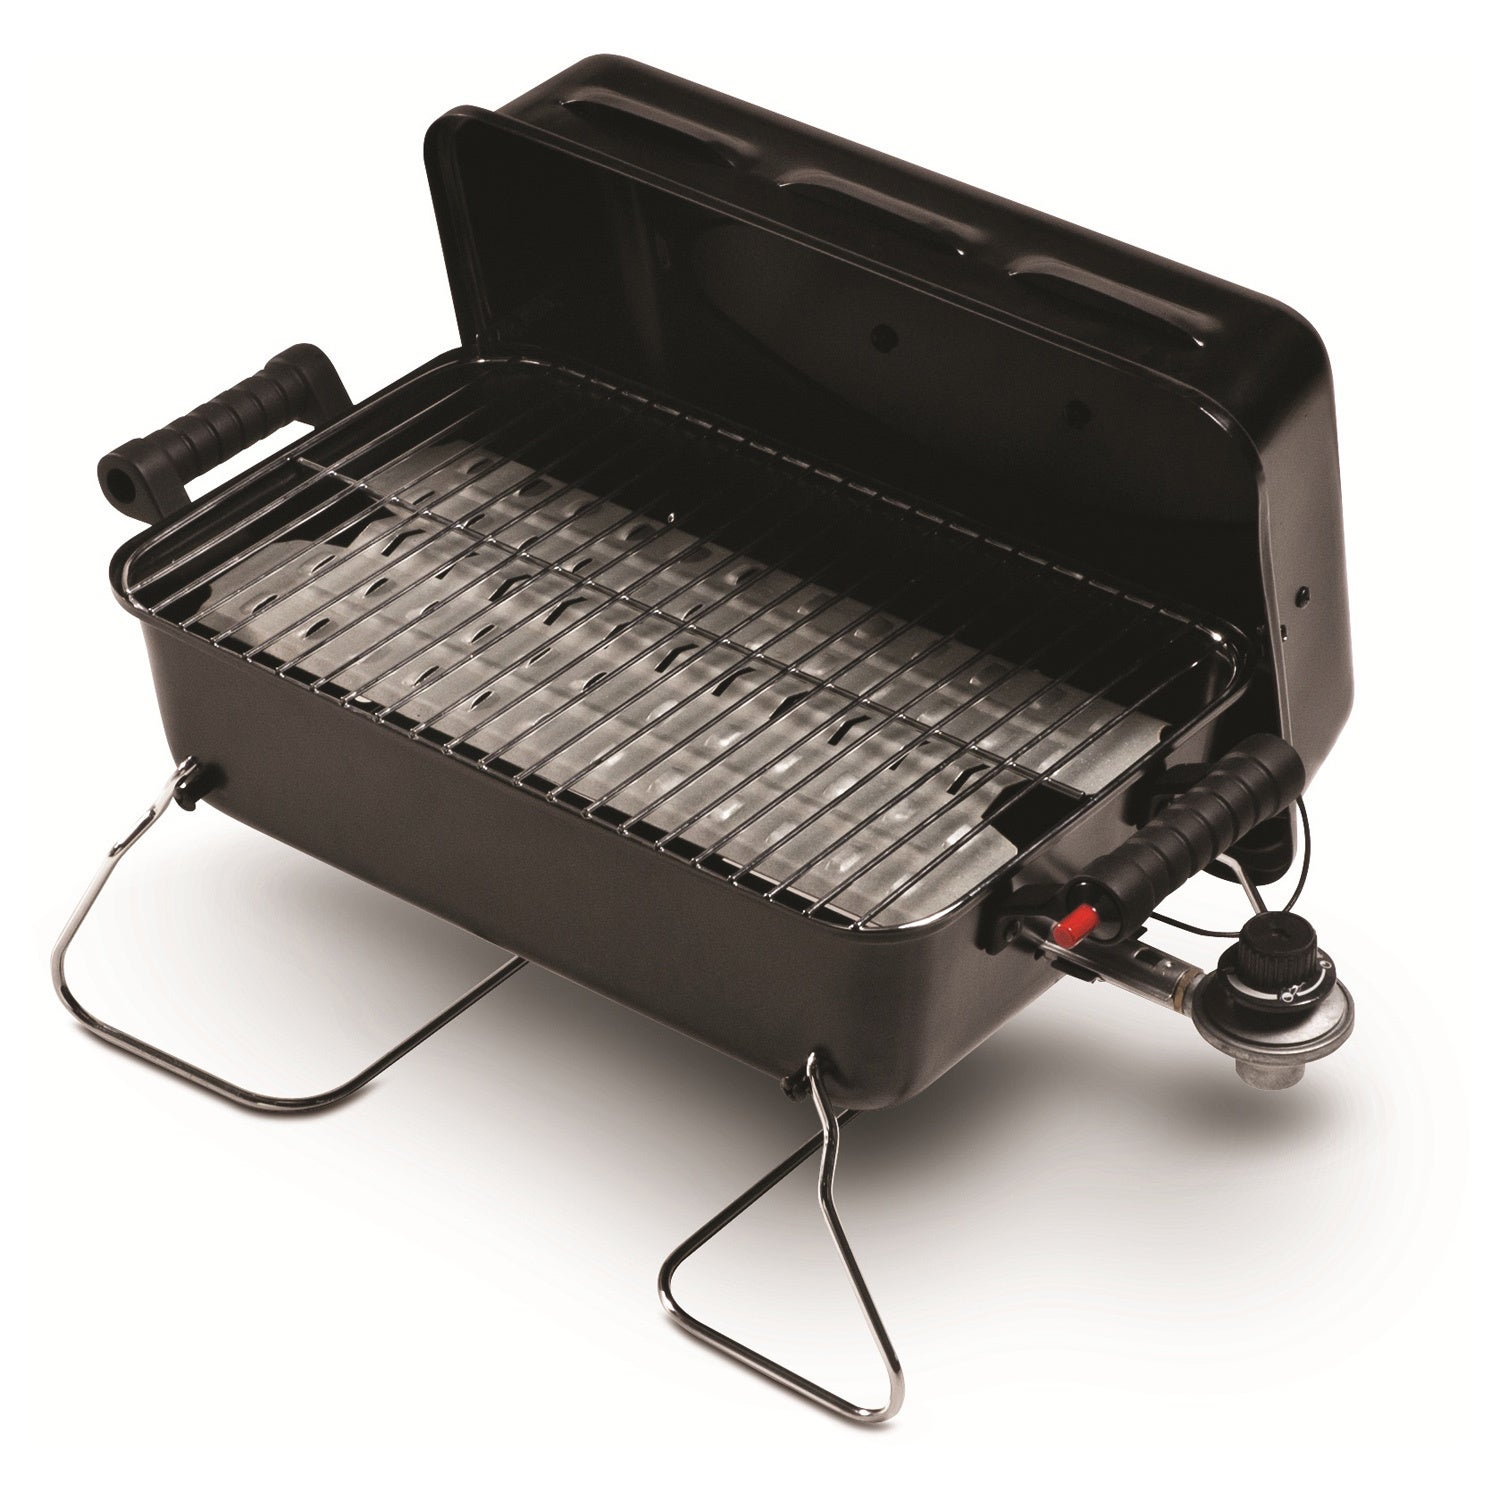 Char-Broil Push-button Ignition Portable Gas Grill, Black...